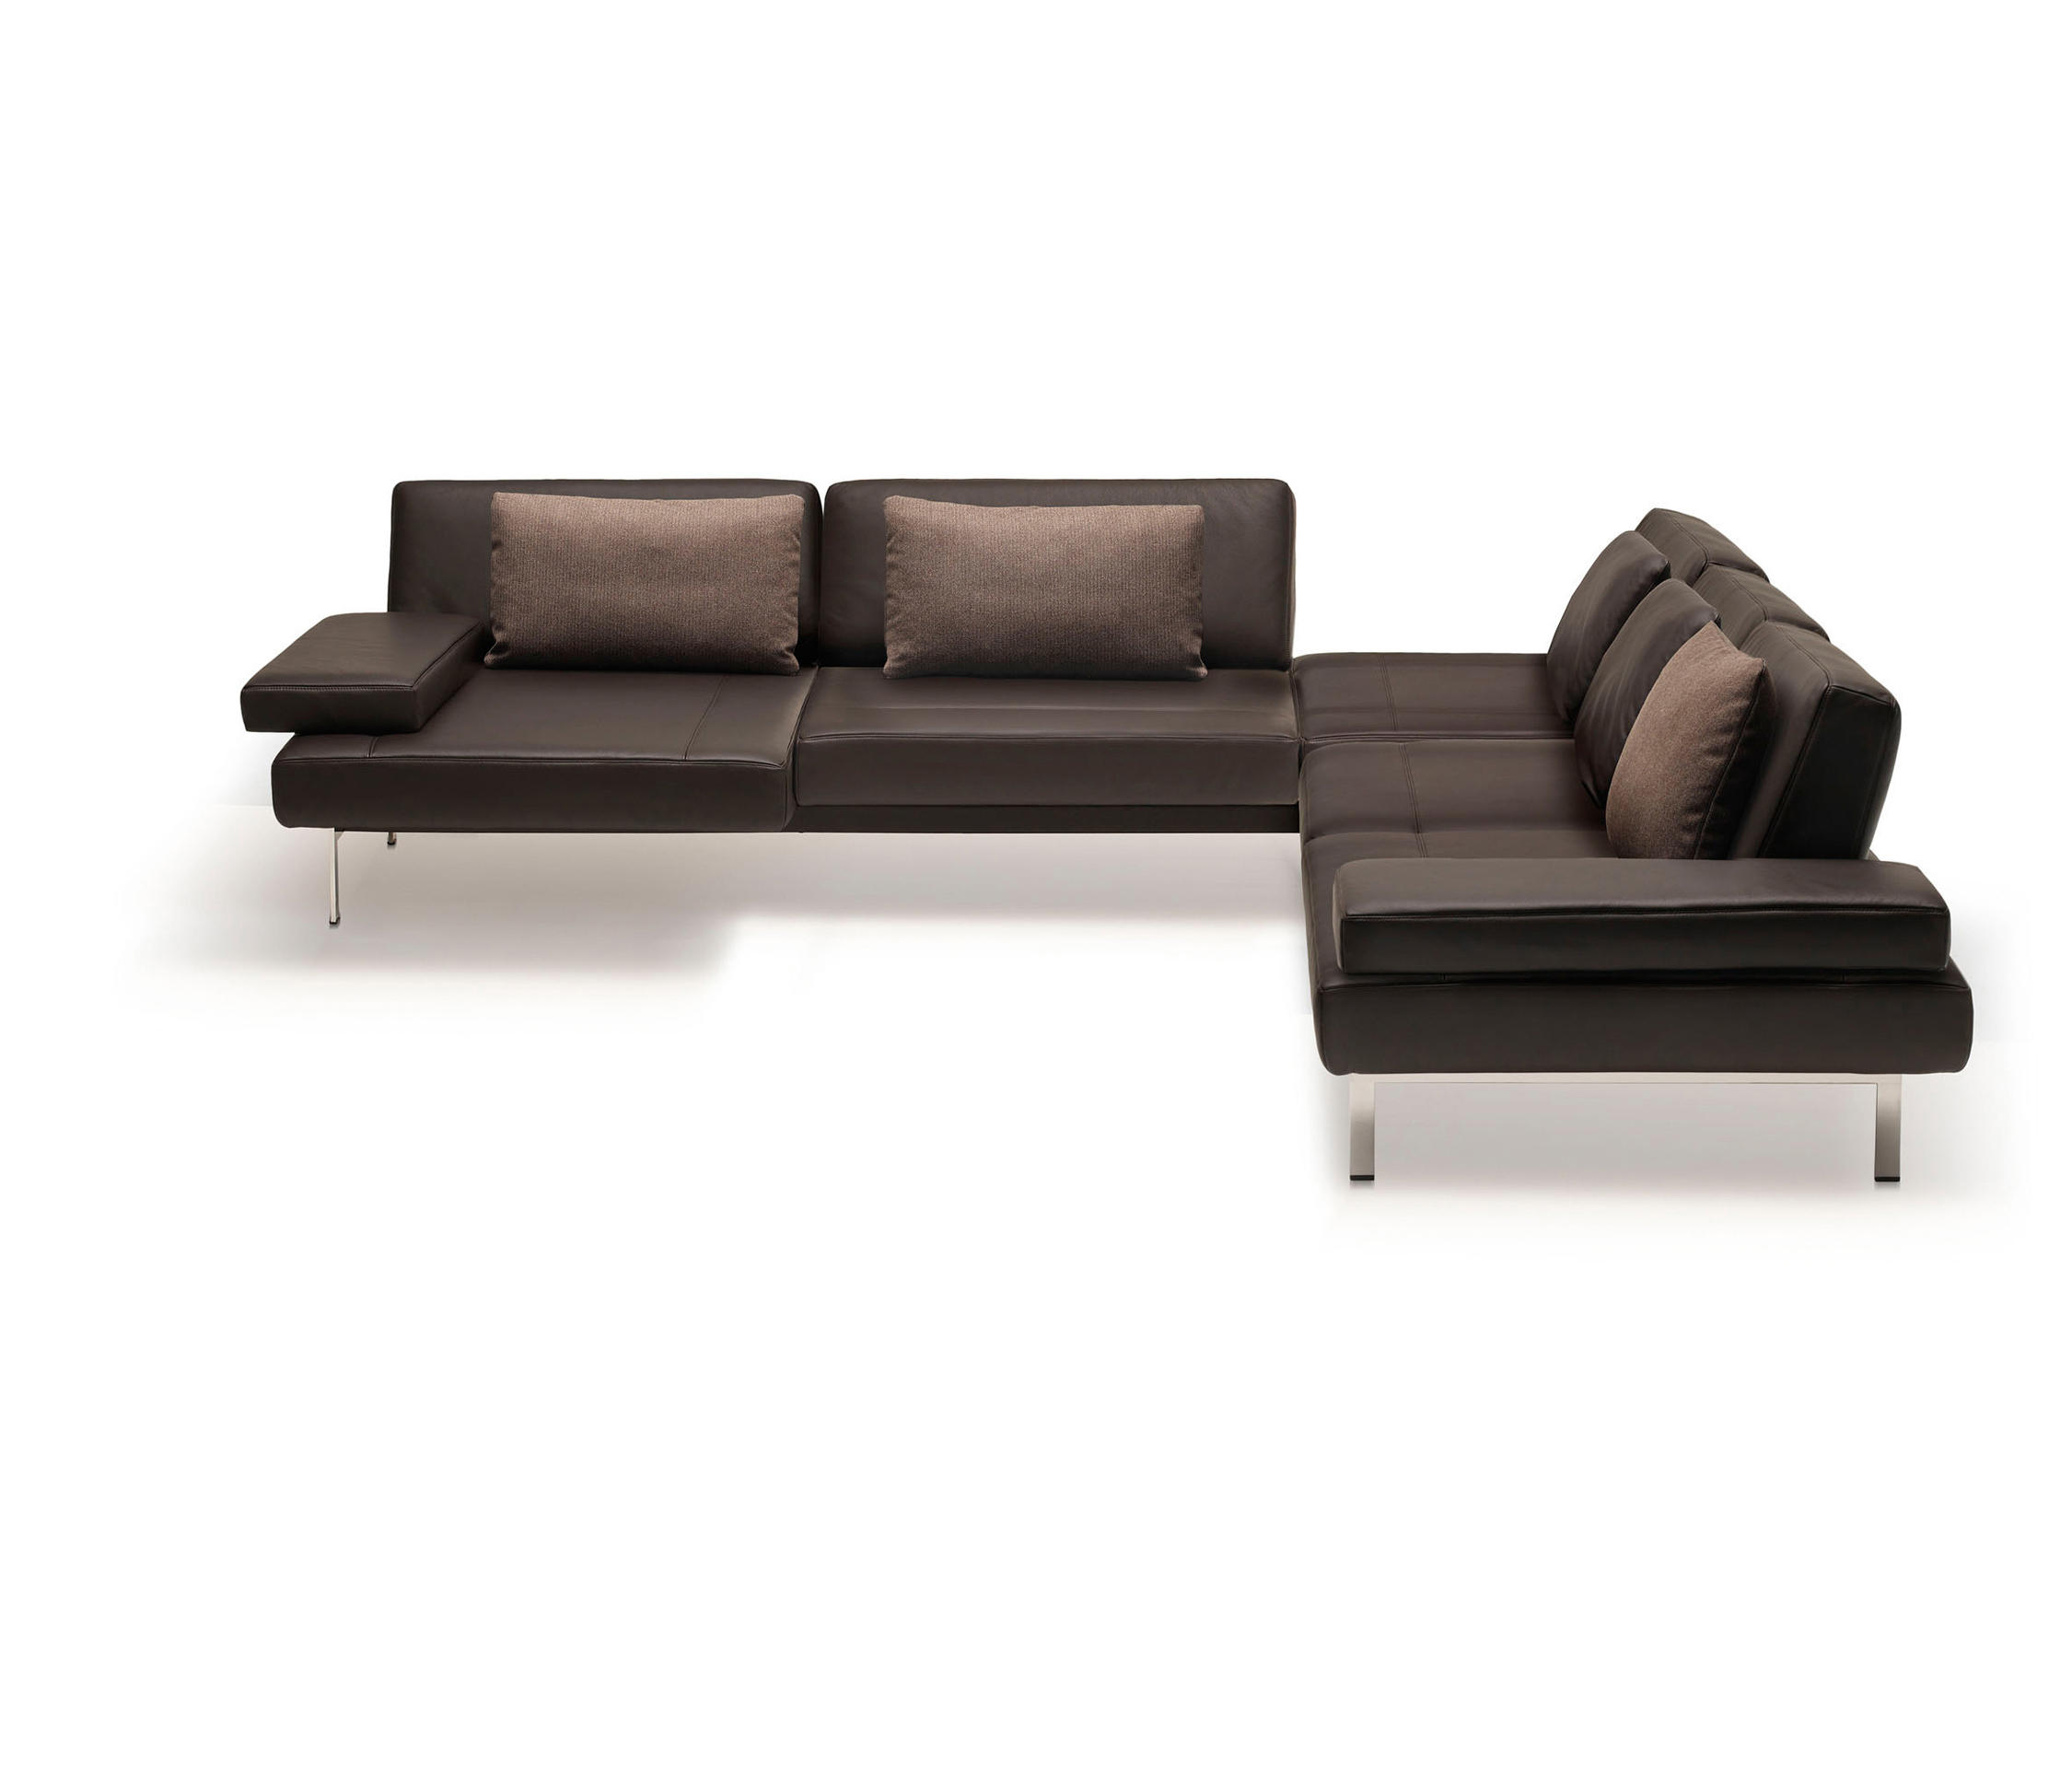 Ds 904 Sofas From De Sede Architonic